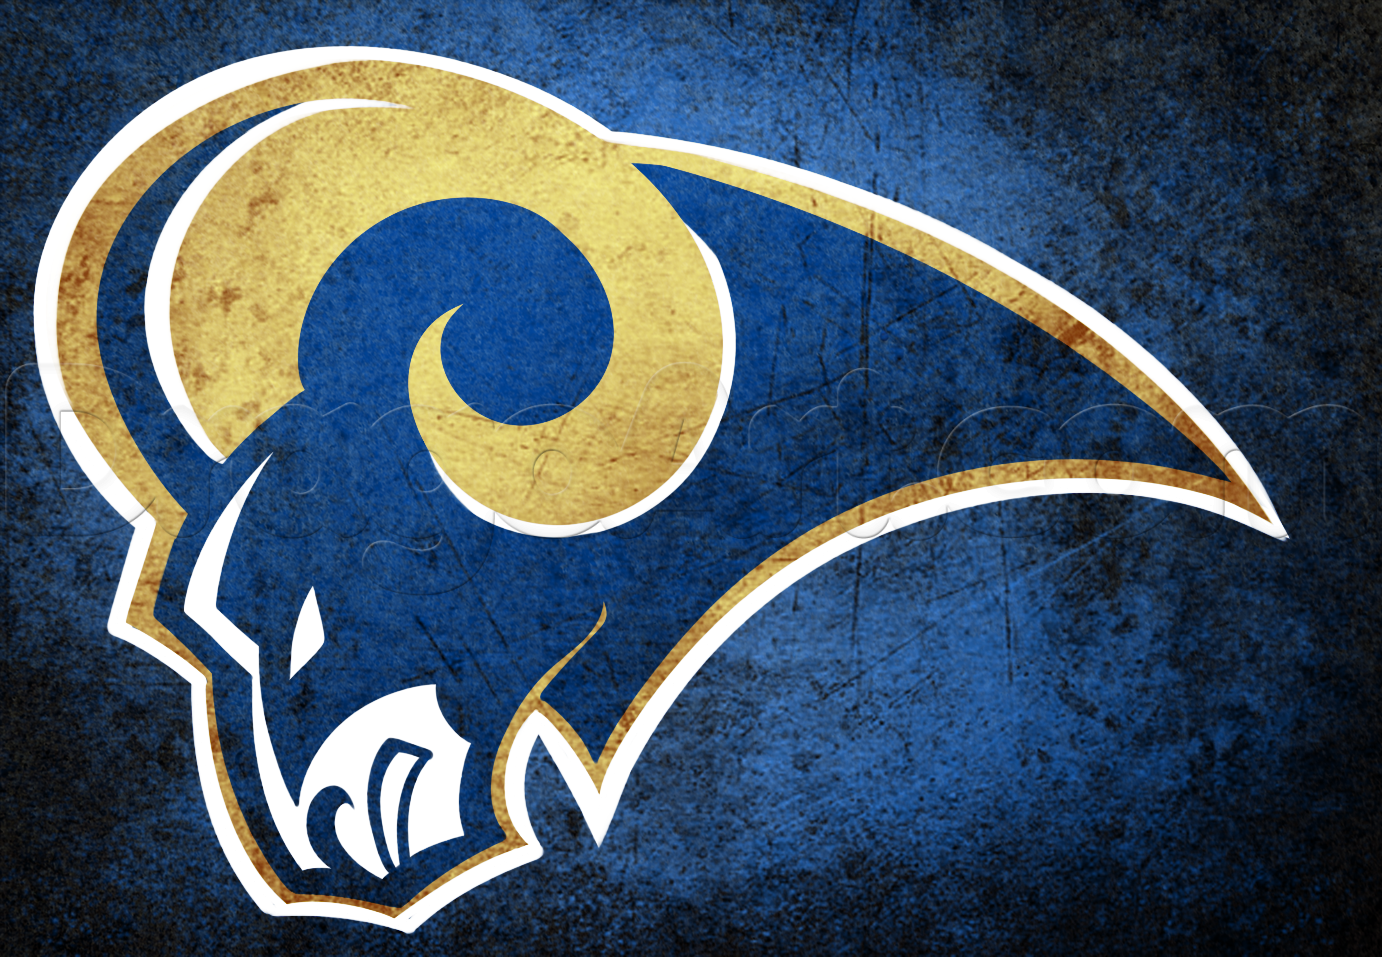 HD St Louis Rams Wallpaper For Background, Naoma Pulliam 88